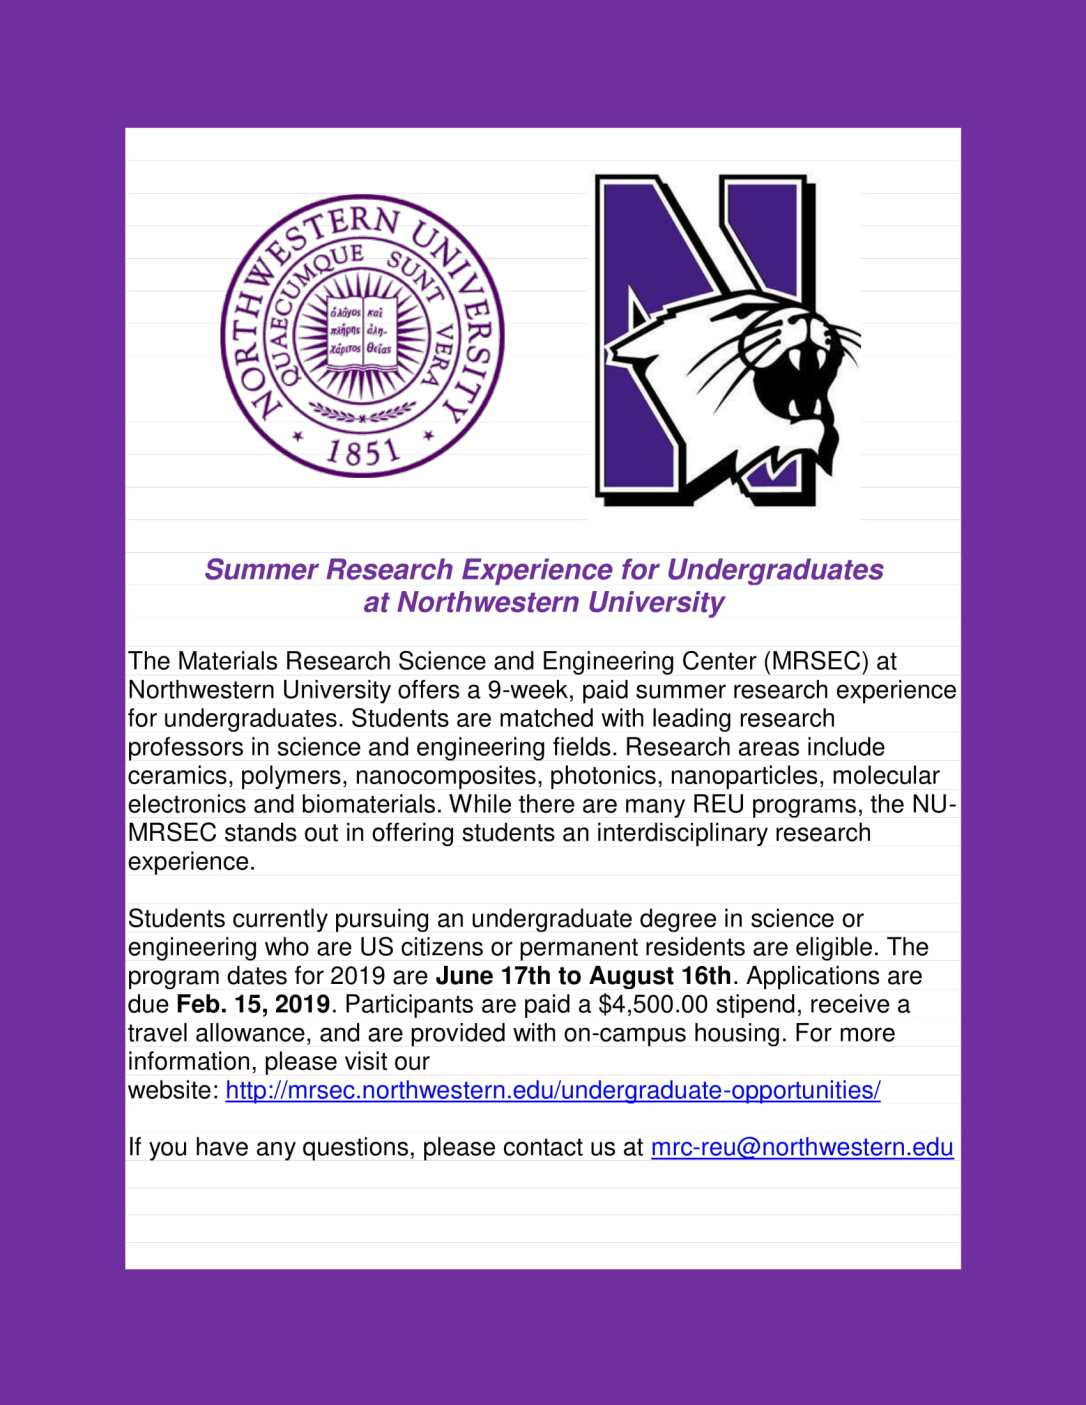 Northwestern Summer Research Experience-1